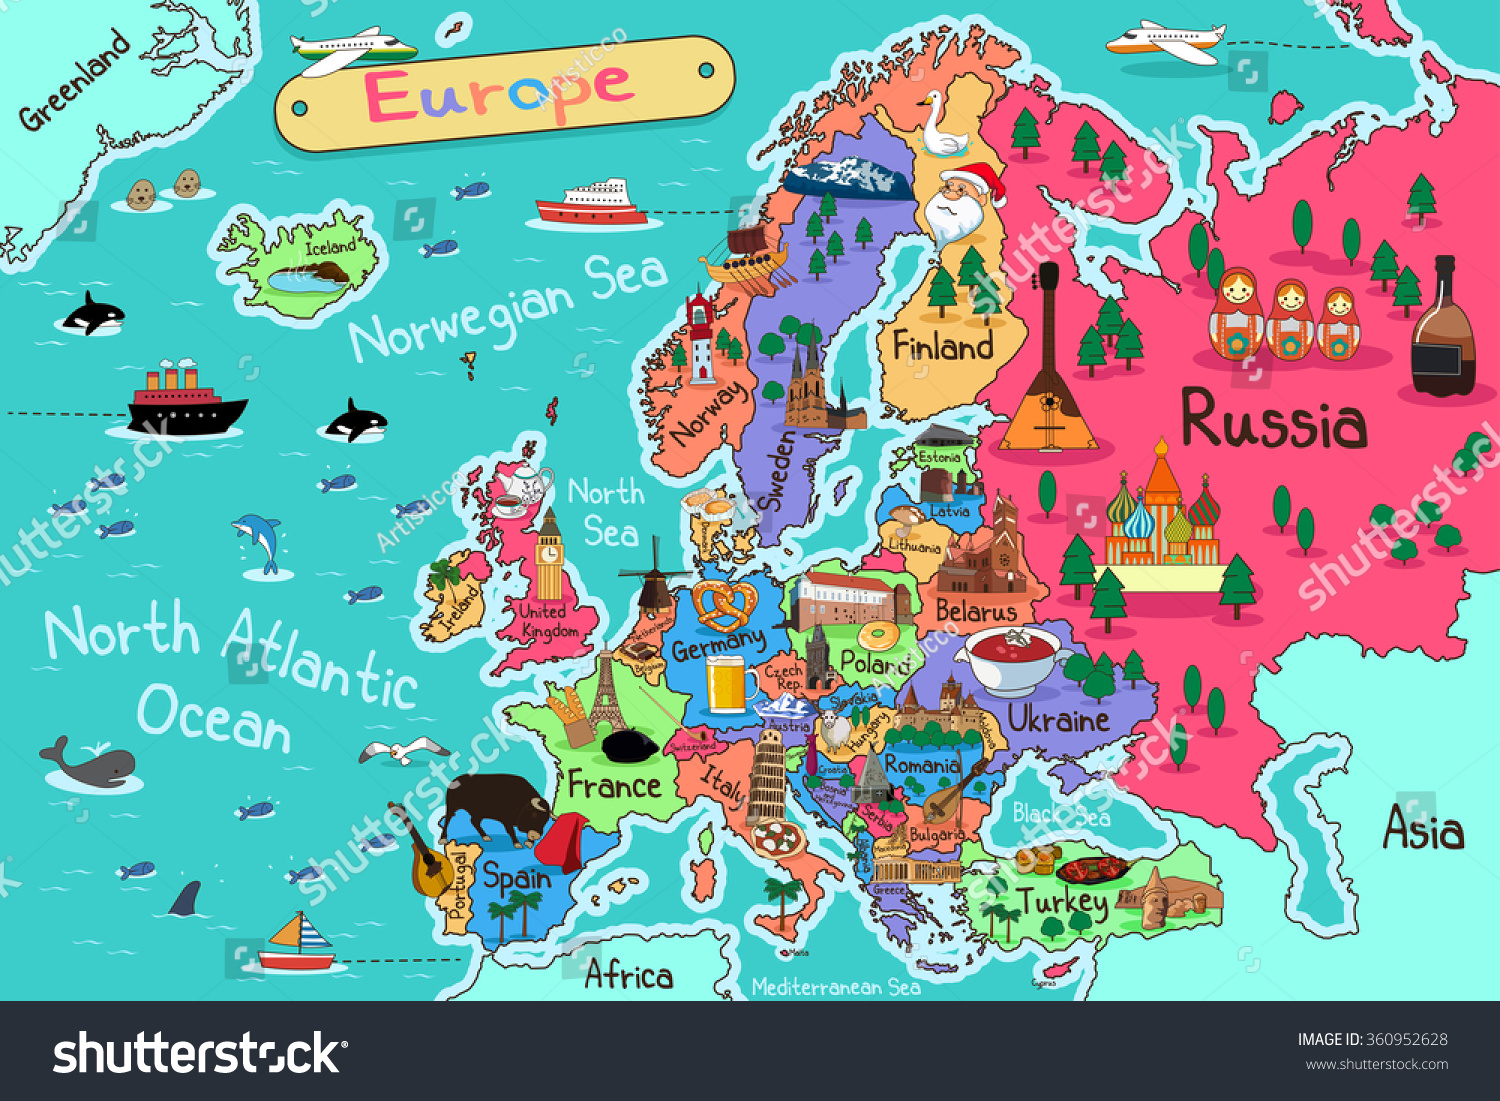 vector illustration of europe - photo #10